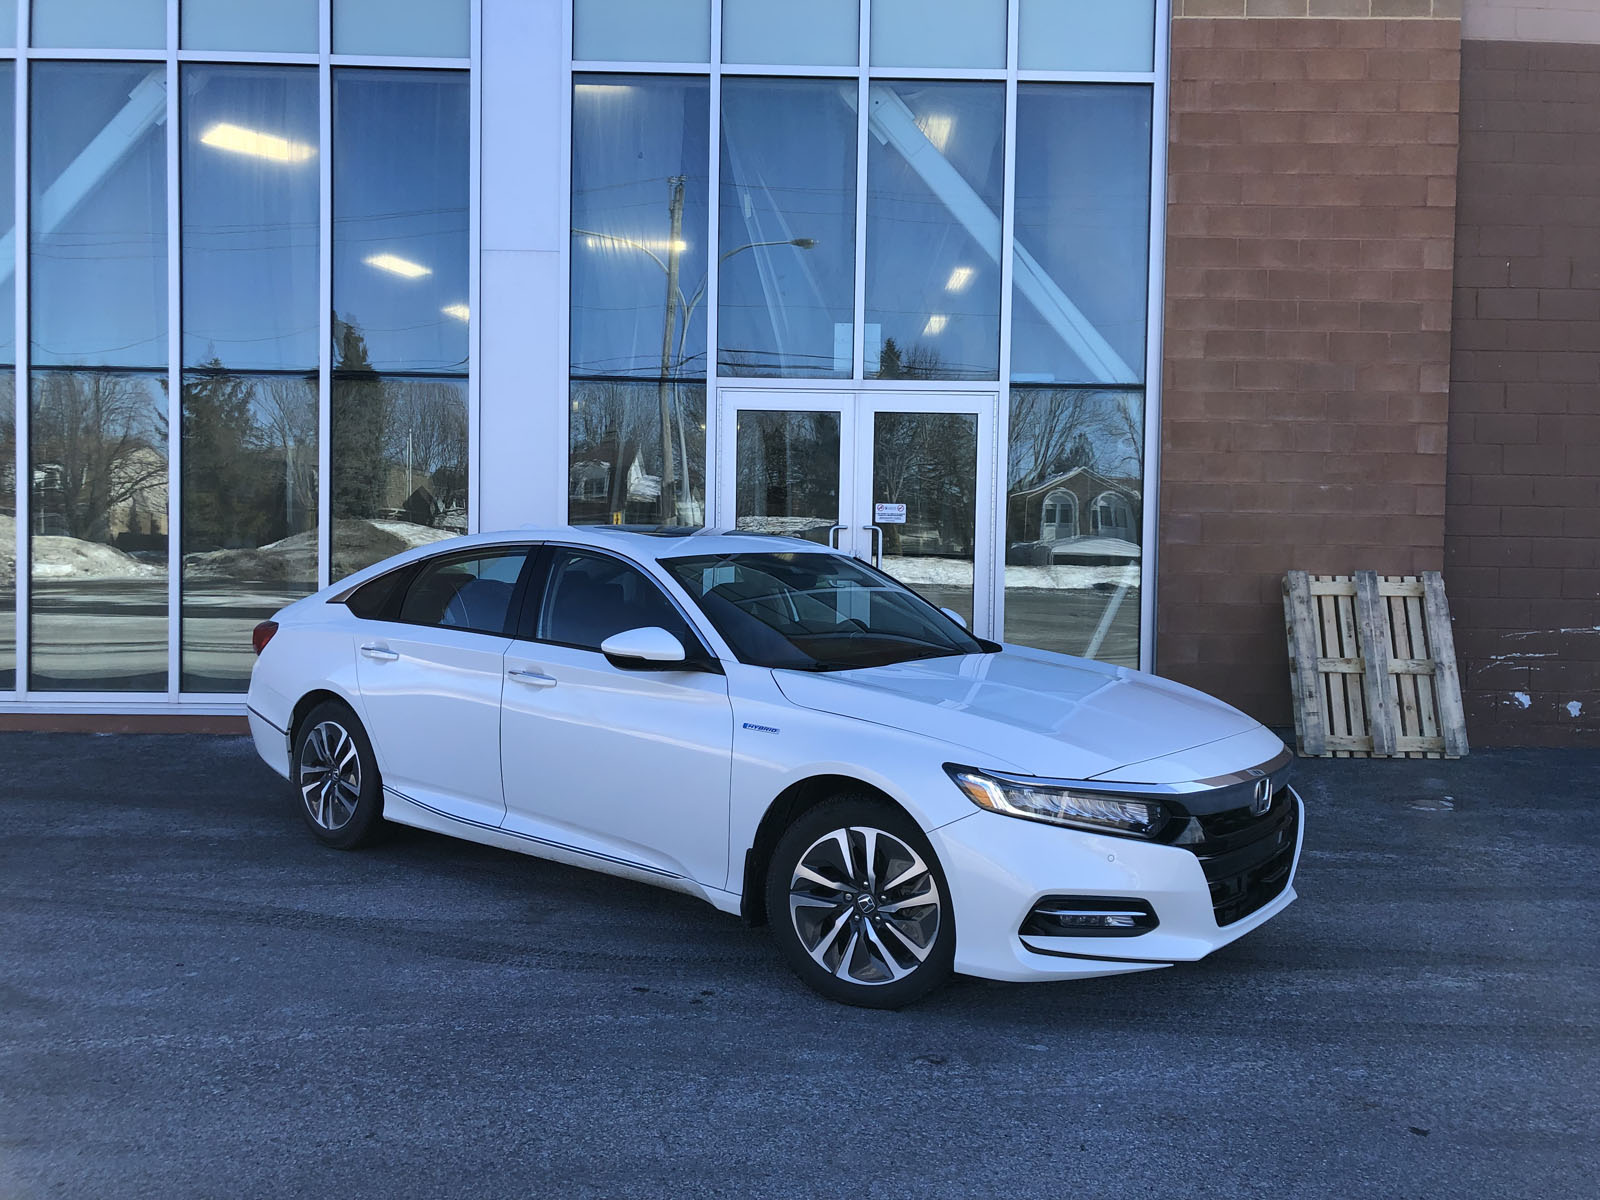 2019 Honda Accord Hybrid Review: This Is The Best Honda ...